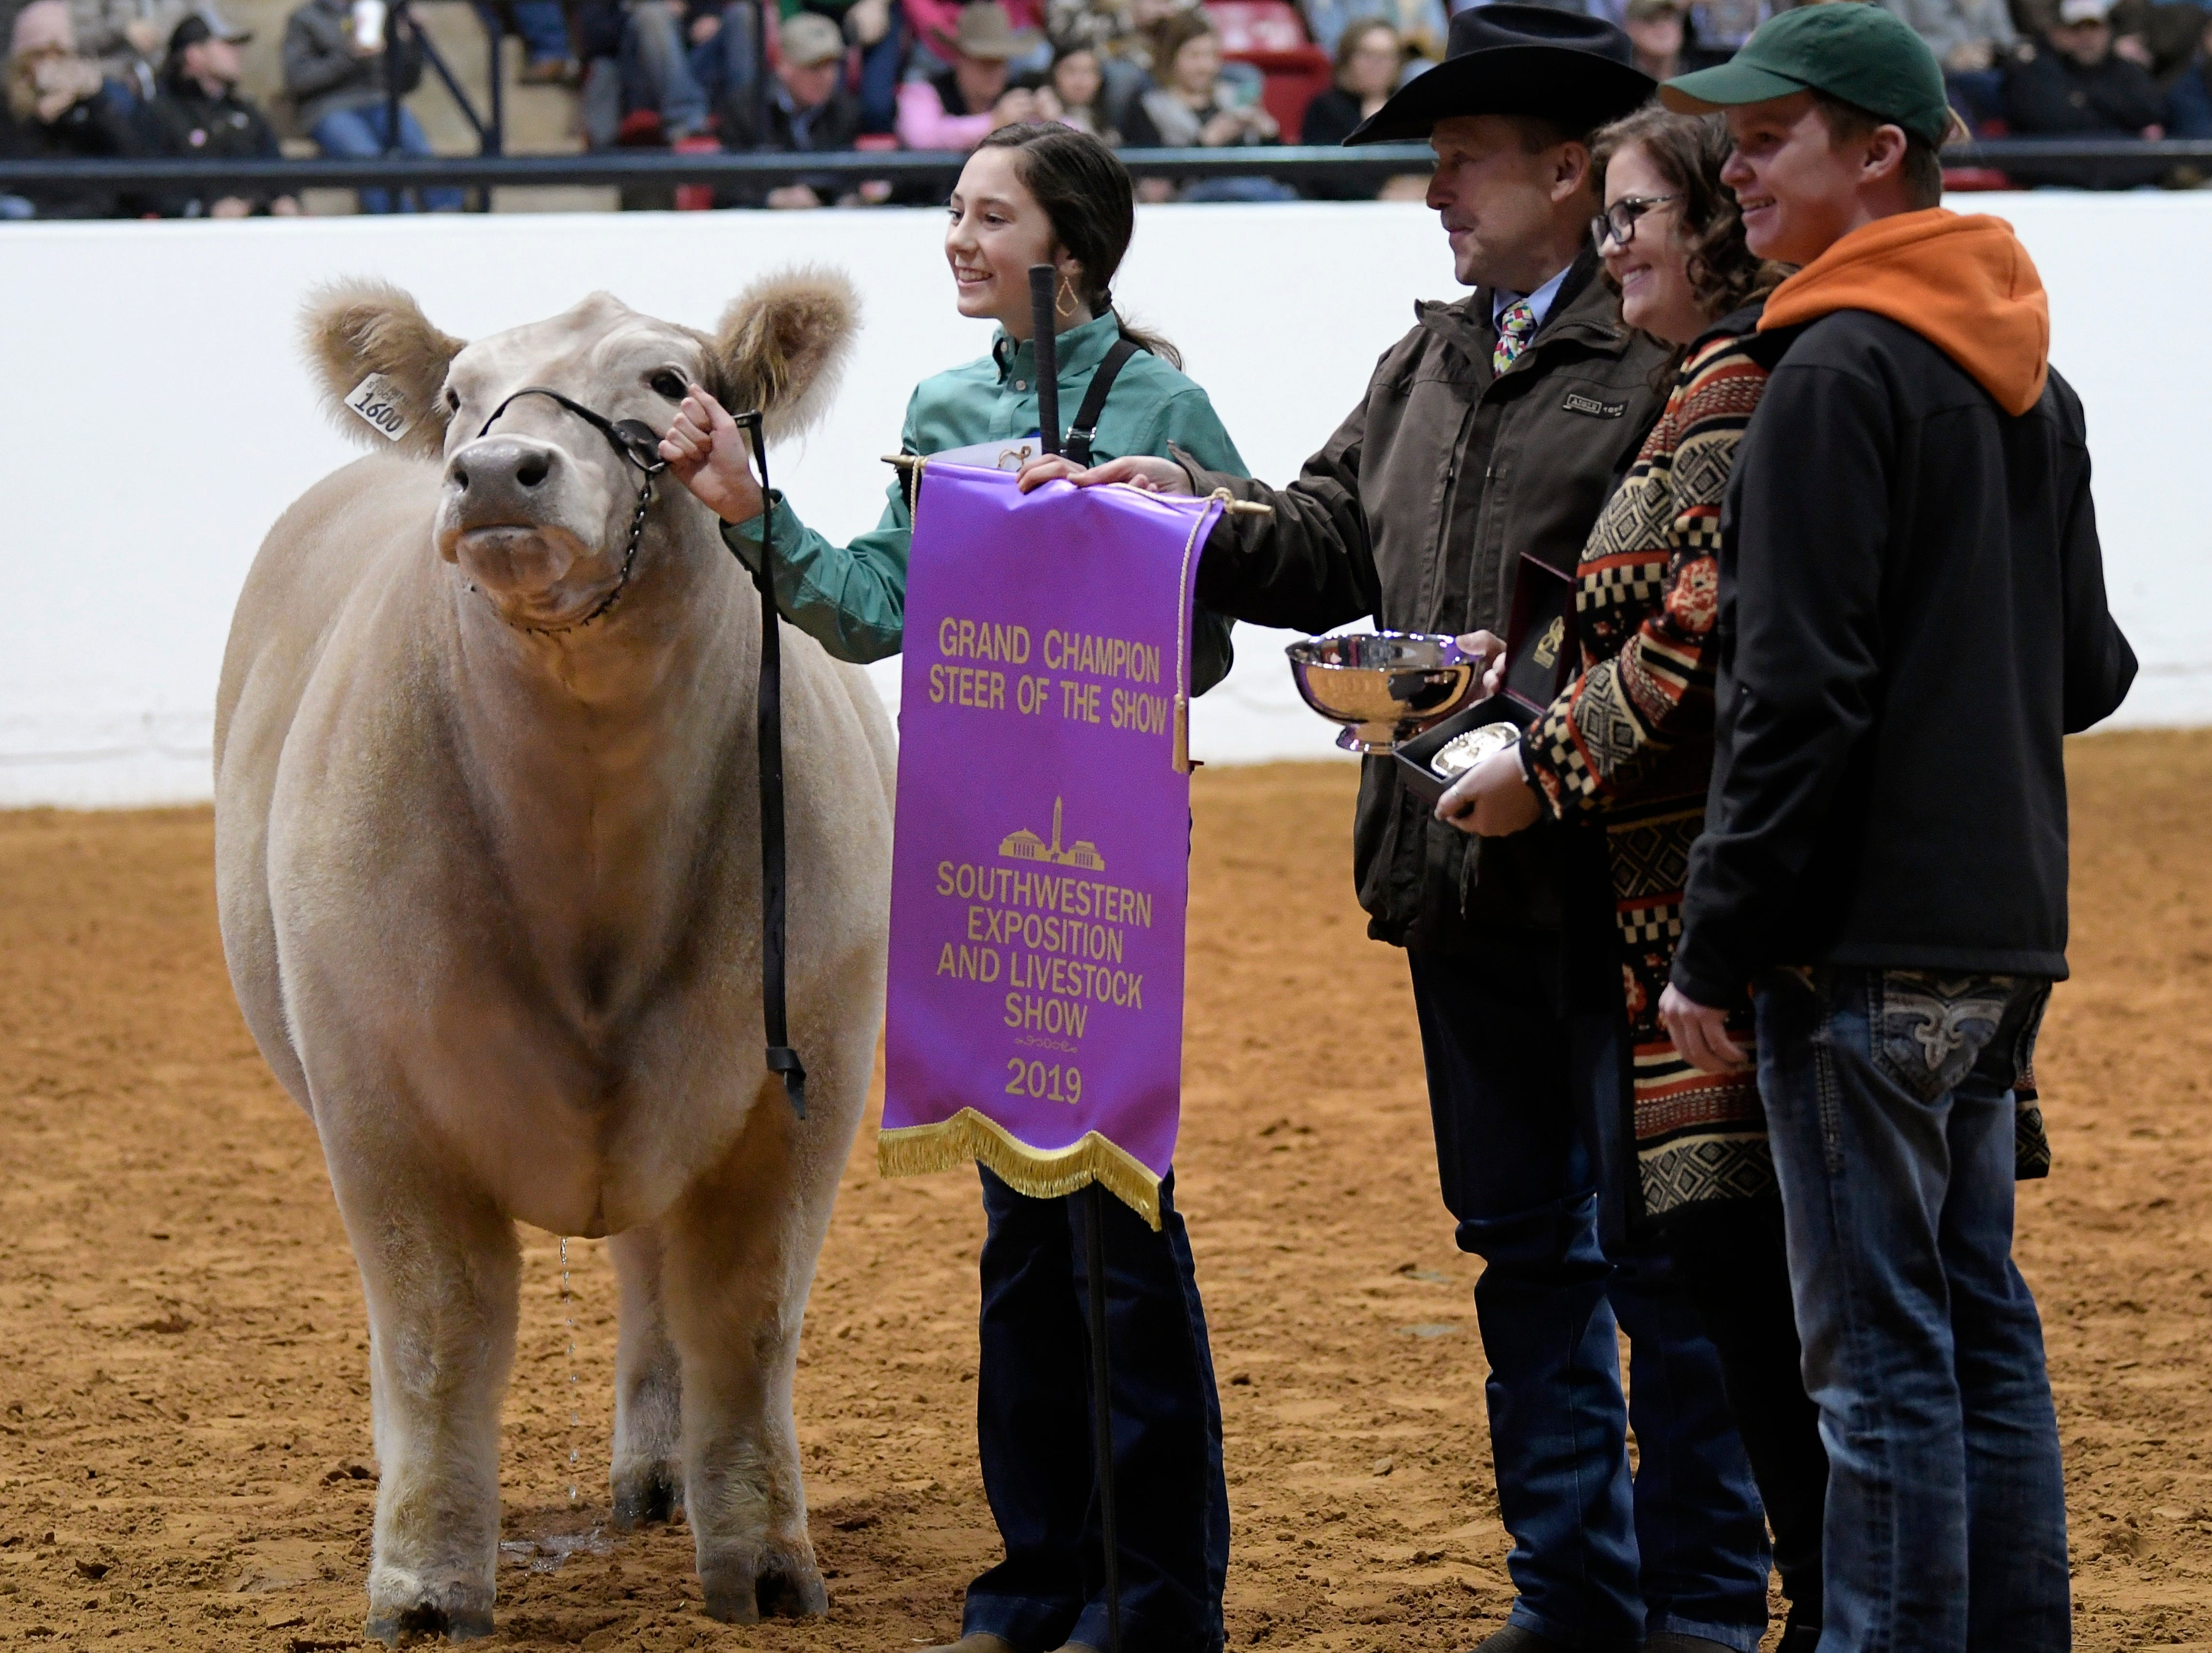 Aven Horn, left, holds a banner after her steer Bentley was named the Grand Champion steer of the Stock Show at Will Rogers Memorial Center in Fort Worth, Texas, Friday, Feb. 8, 2019.